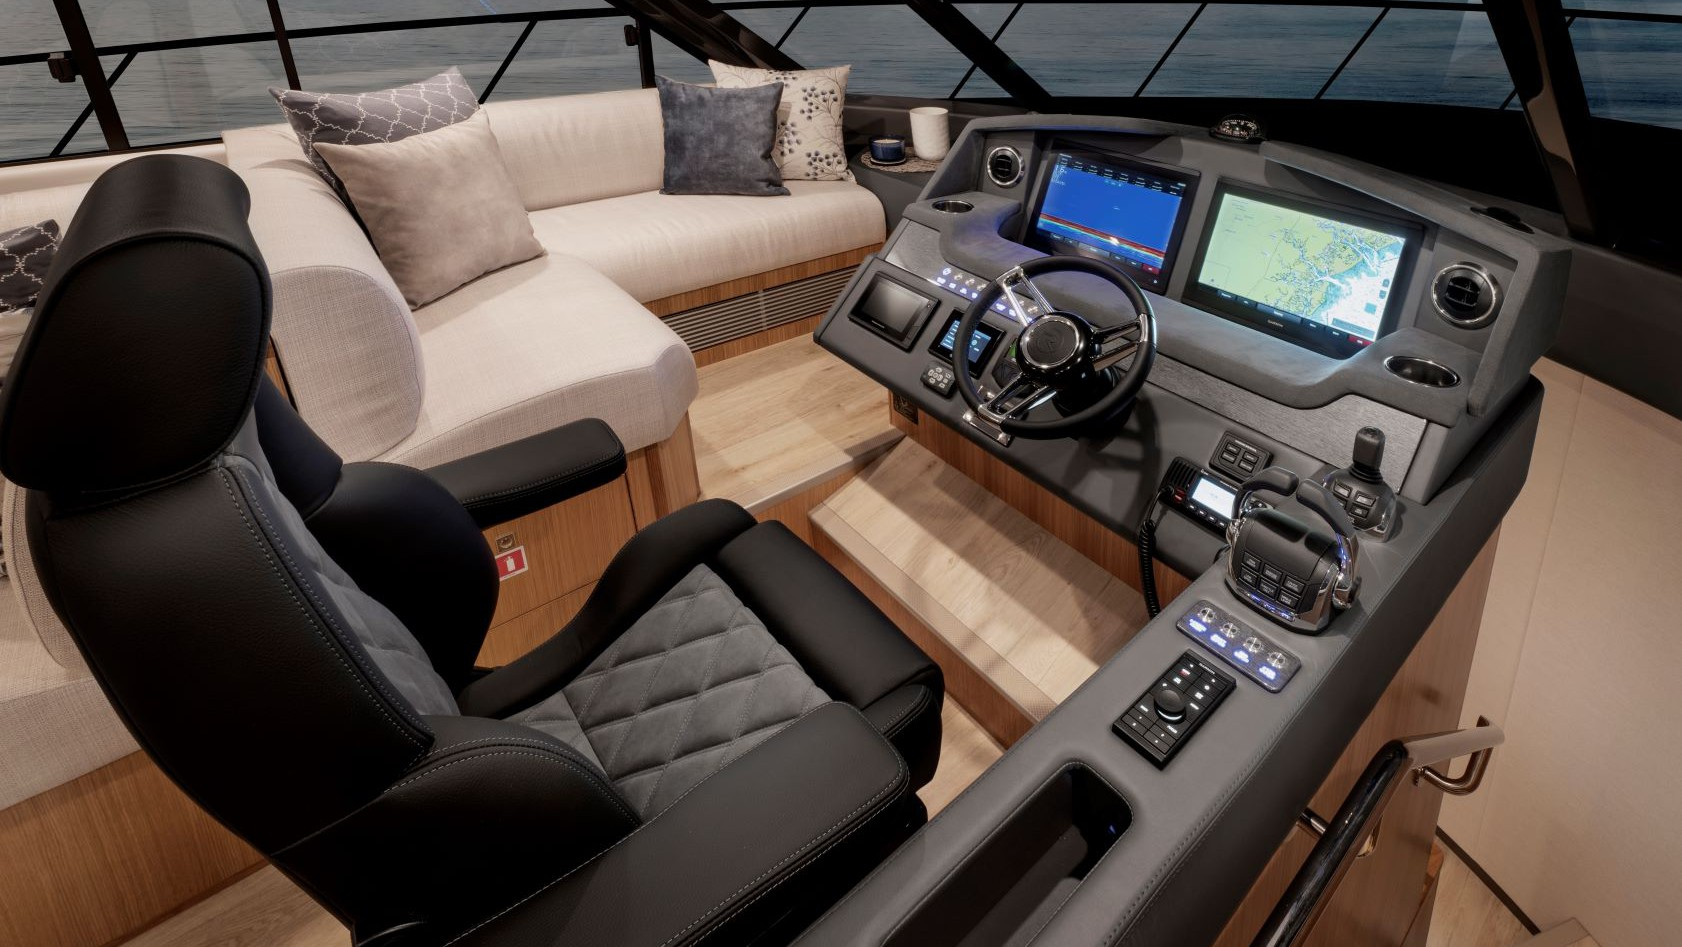 How do I prepare my yacht for sale?